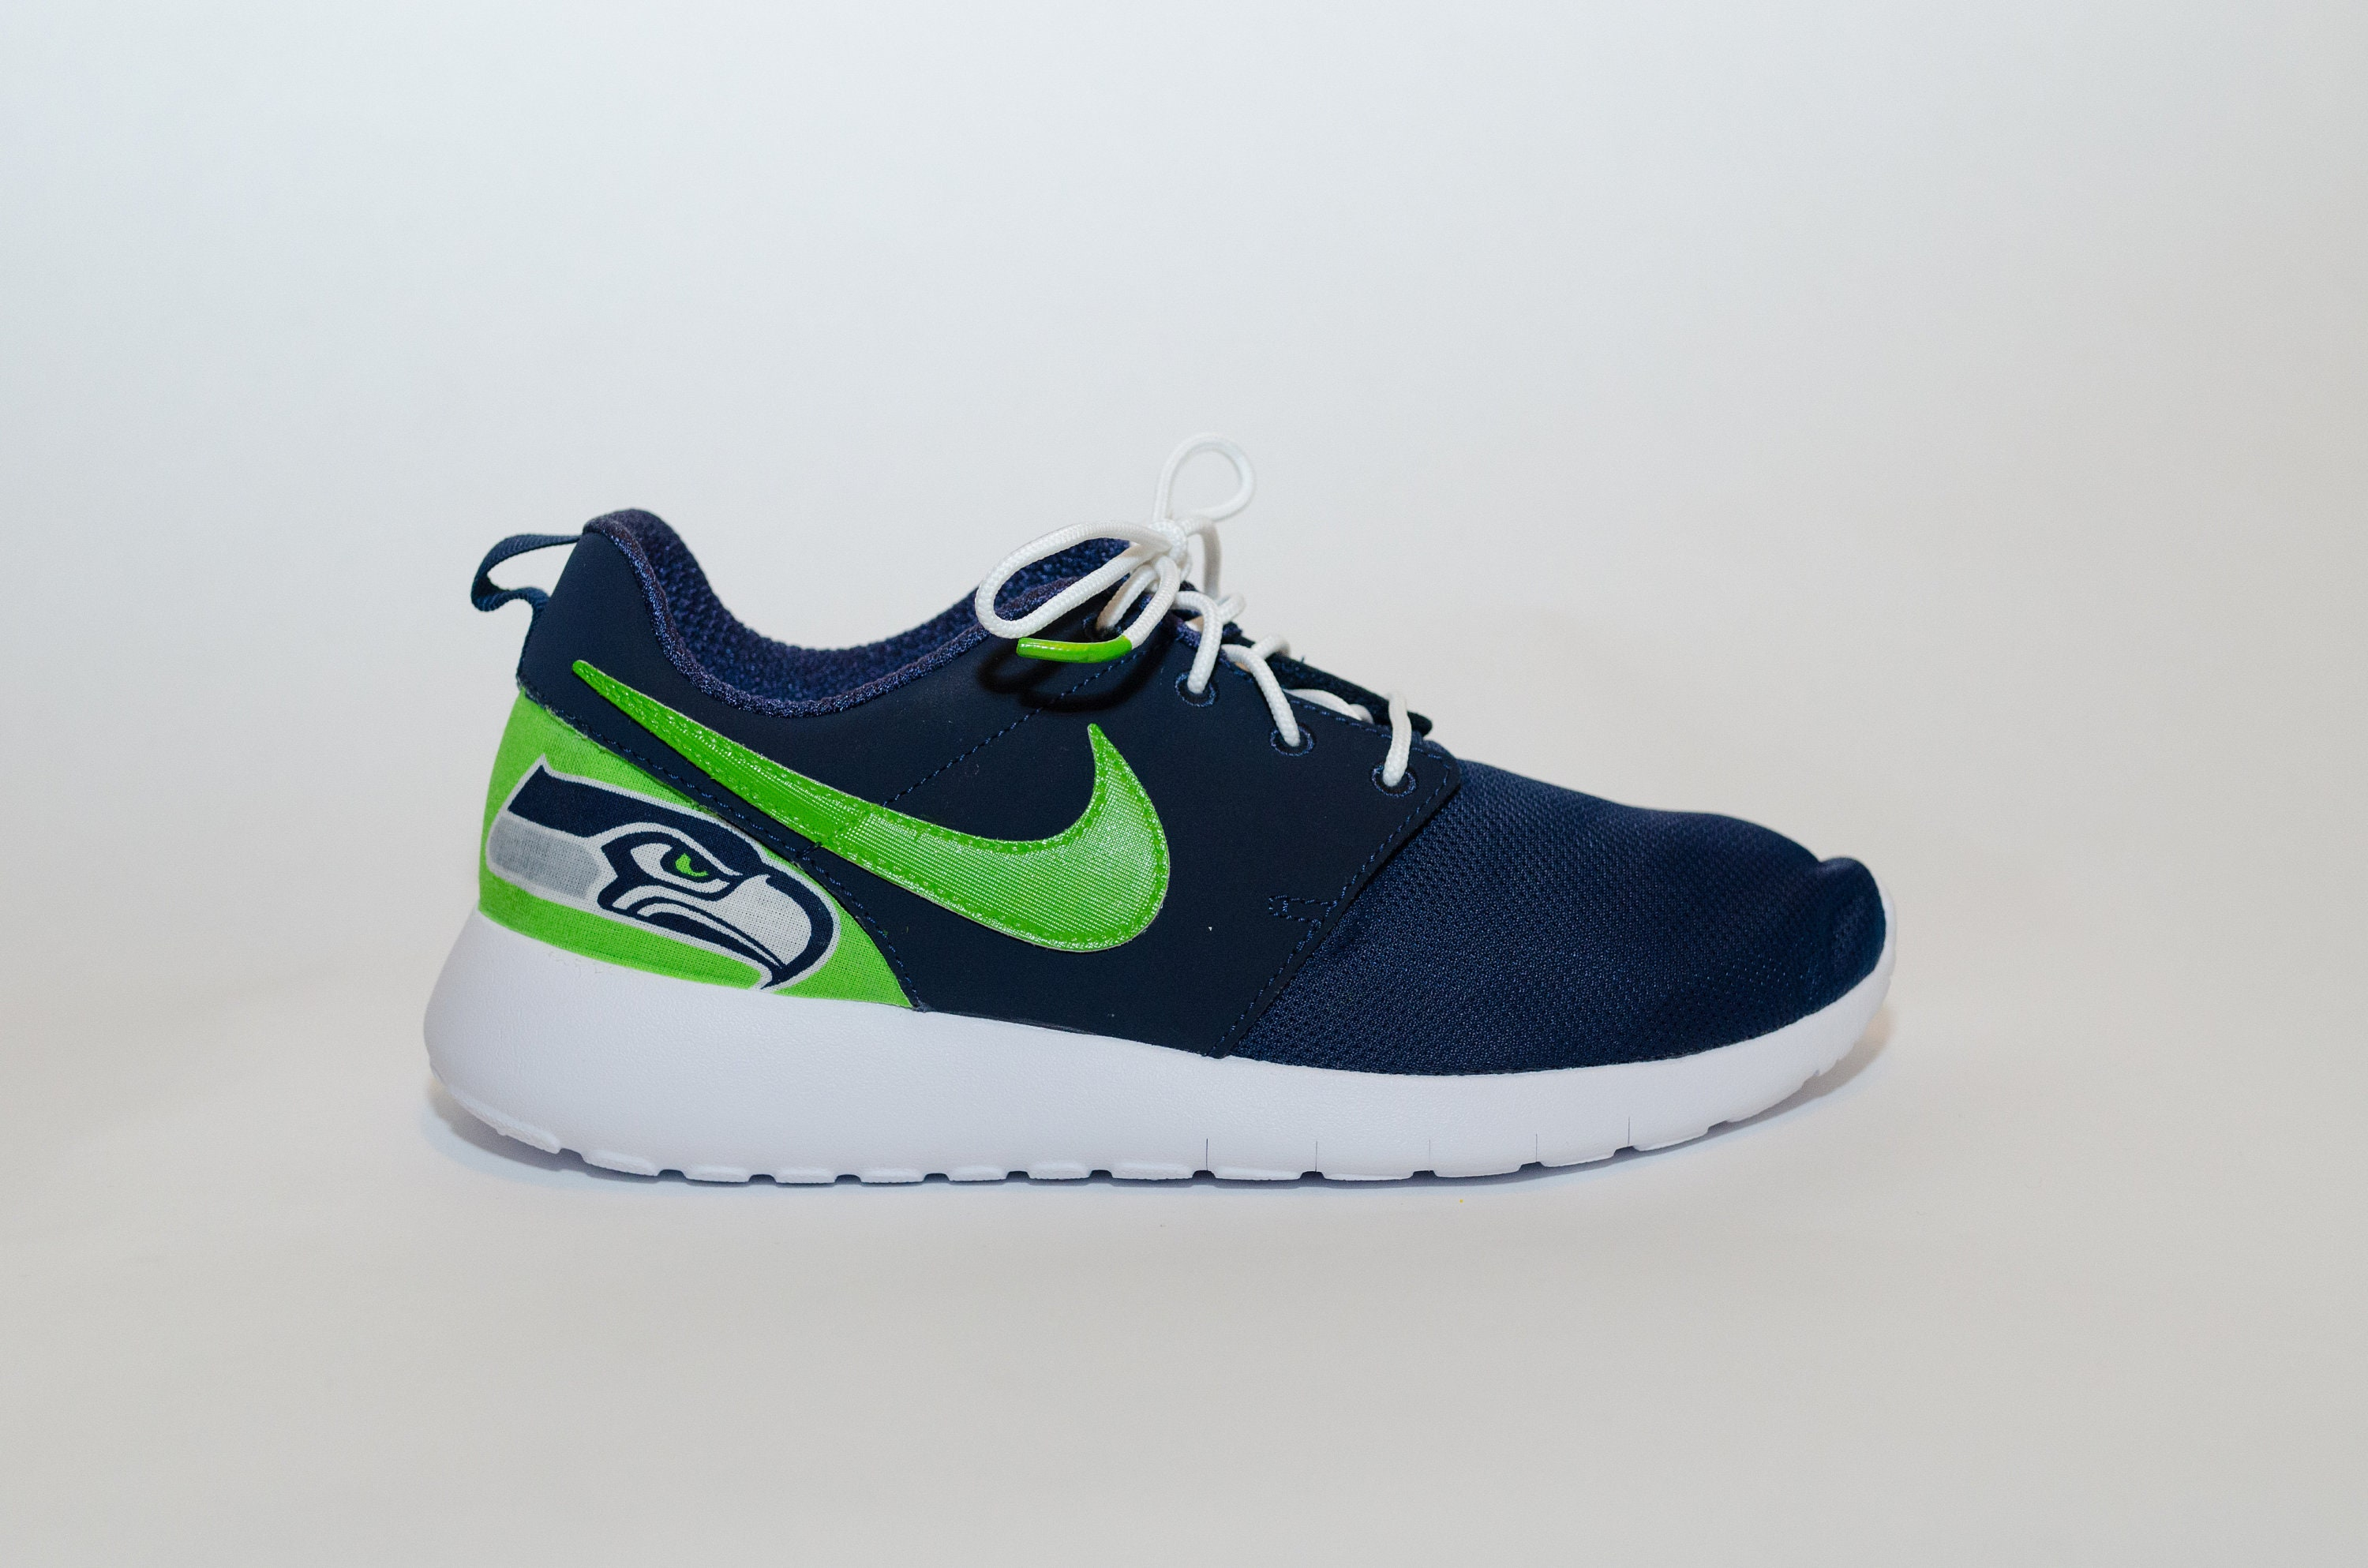 la coutume coutume coutume des seattle seahawks chaussures